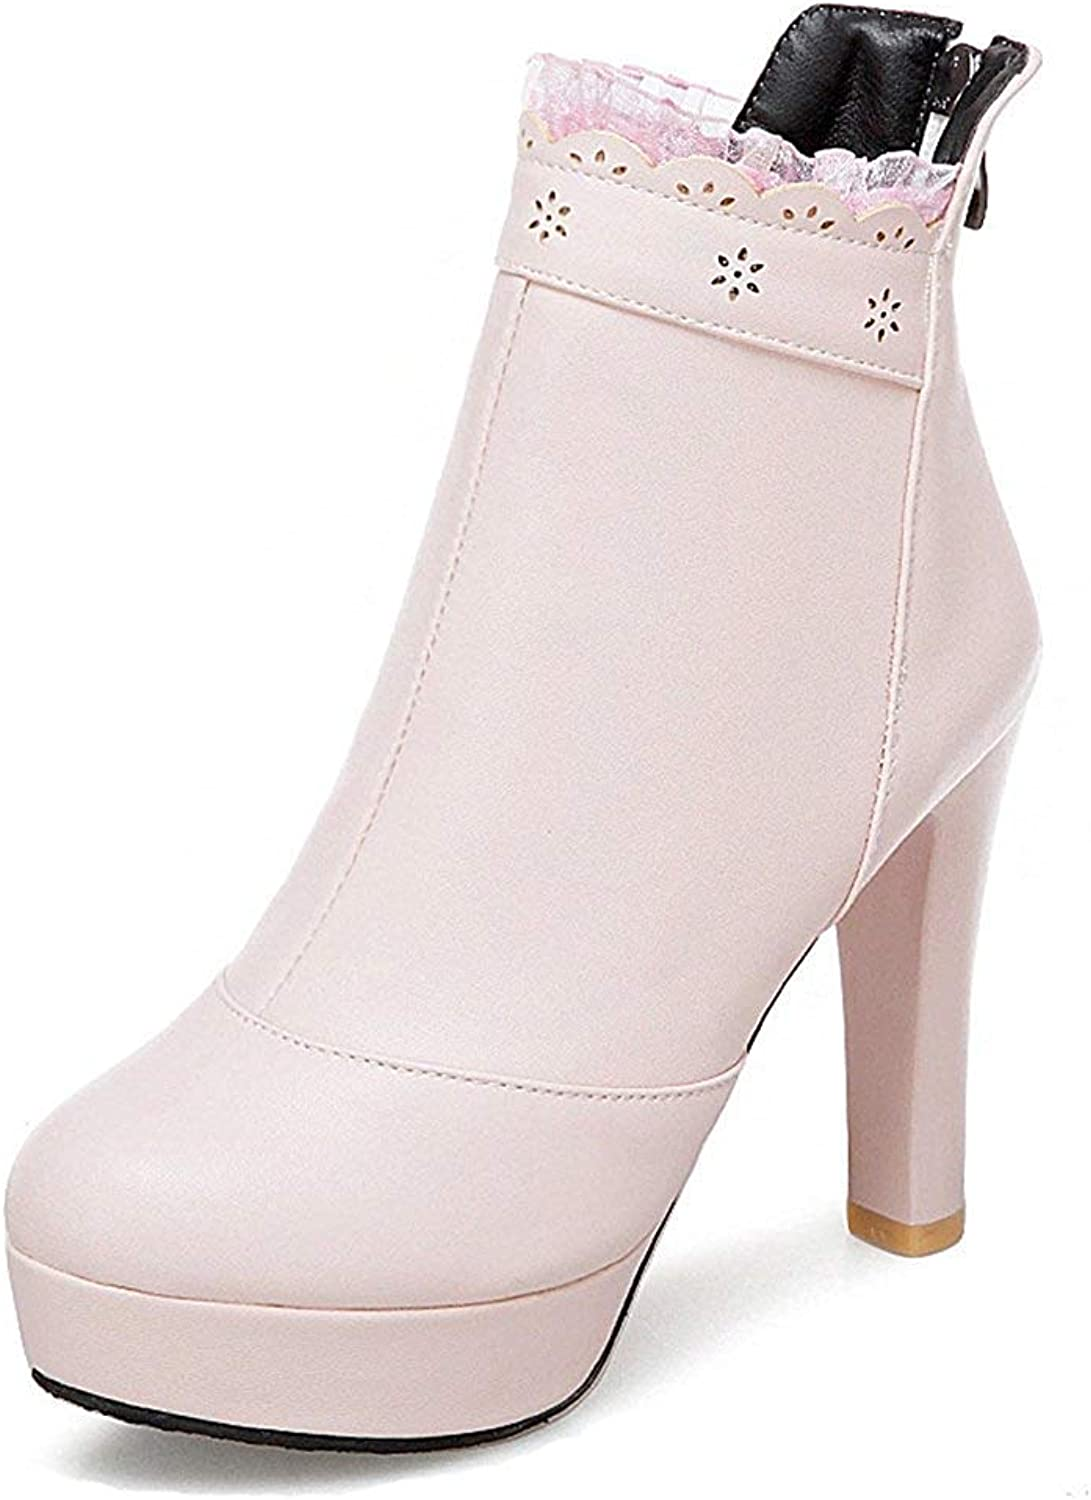 Unm Women's Round Toe Platform Booties - Lace Chunky Zip up - High Heel Ankle Boots